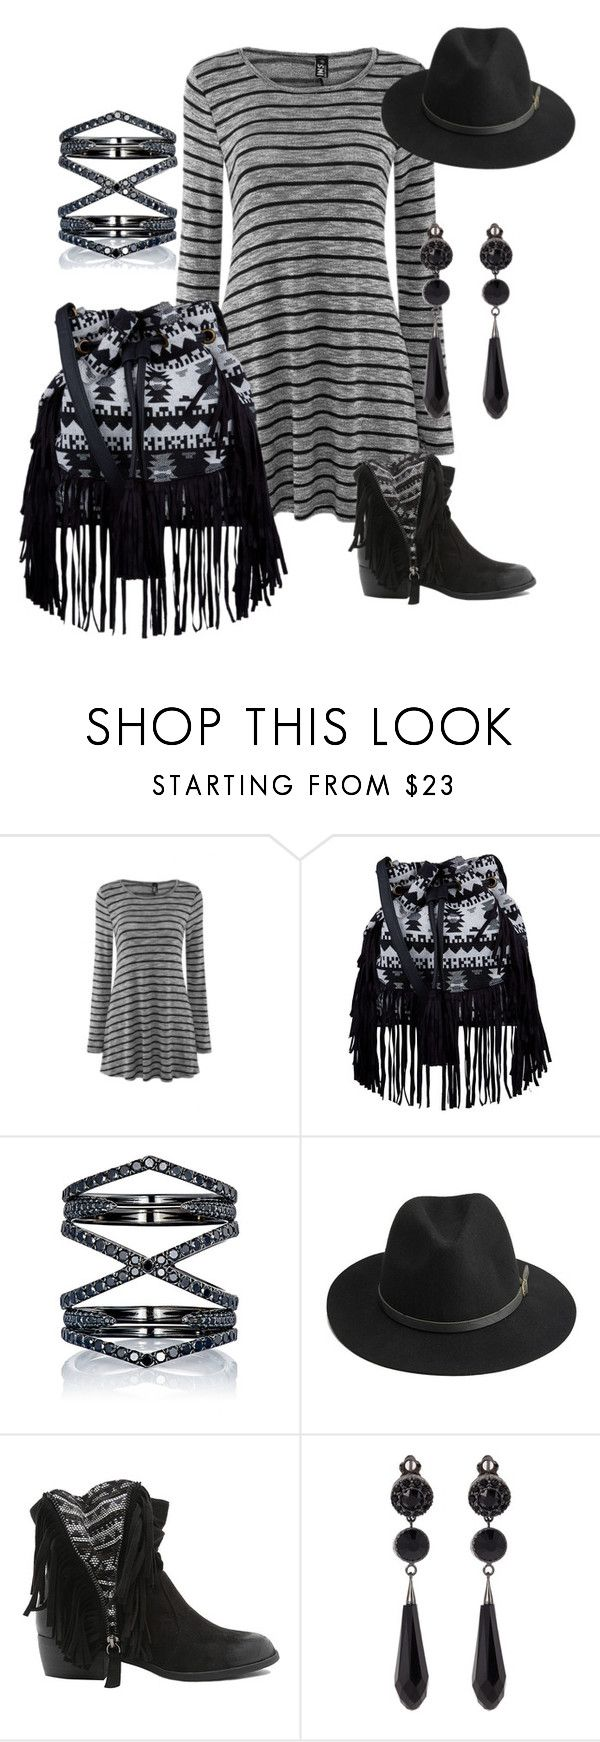 """""""Untitled #553"""" by srlangley ❤ liked on Polyvore featuring Eva Fehren, BeckSöndergaard, Qupid, Givenchy, women's clothing, women, female, woman, misses and juniors"""